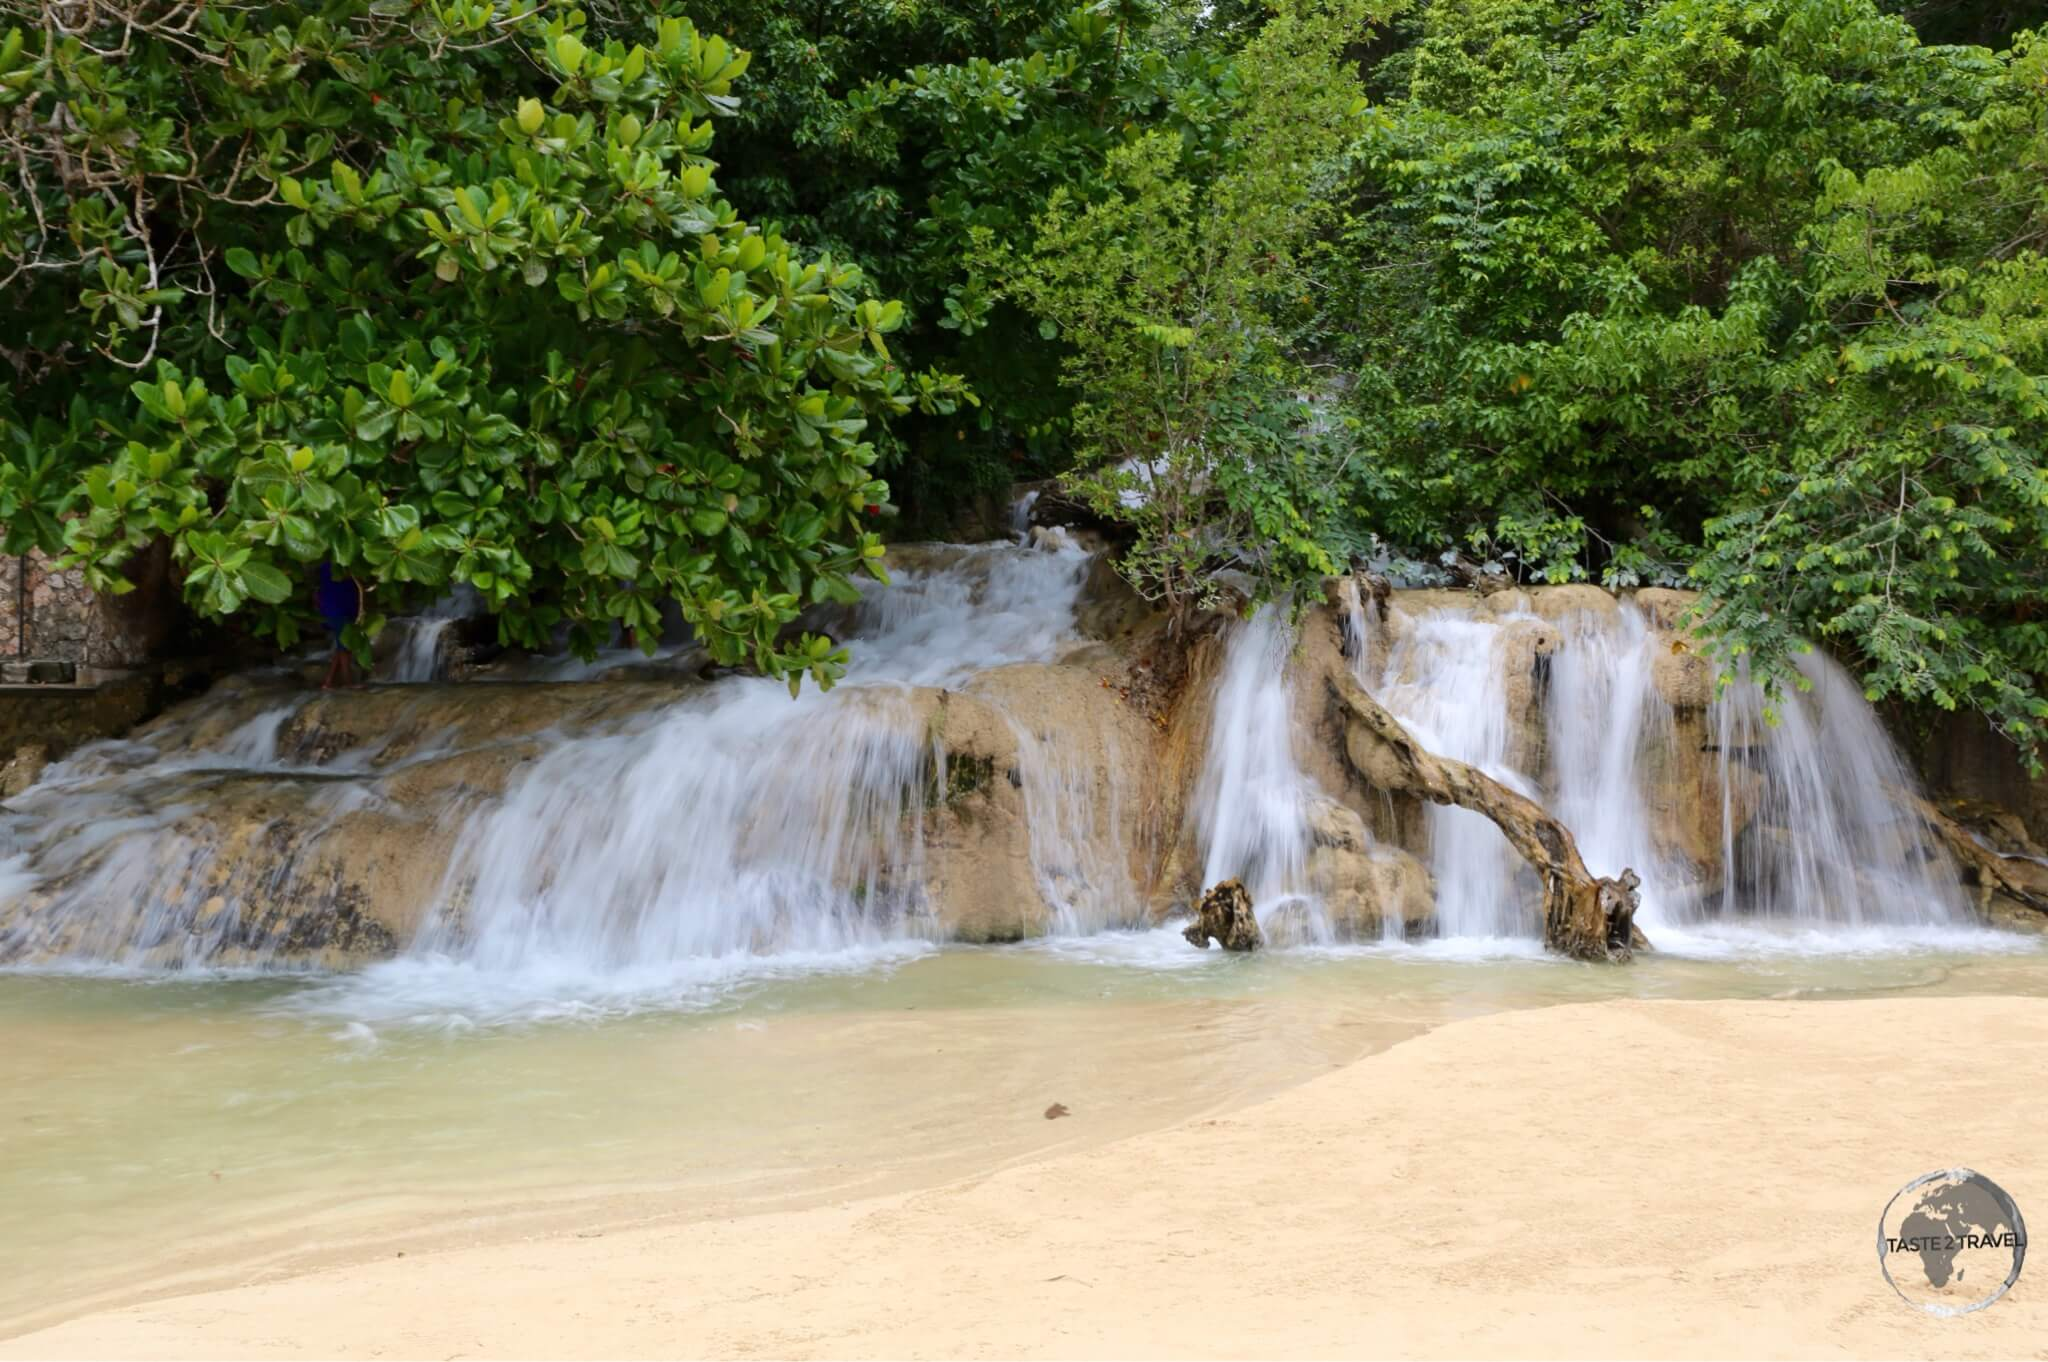 Dunn's River falls cascading onto the beach near Ocho Rios.